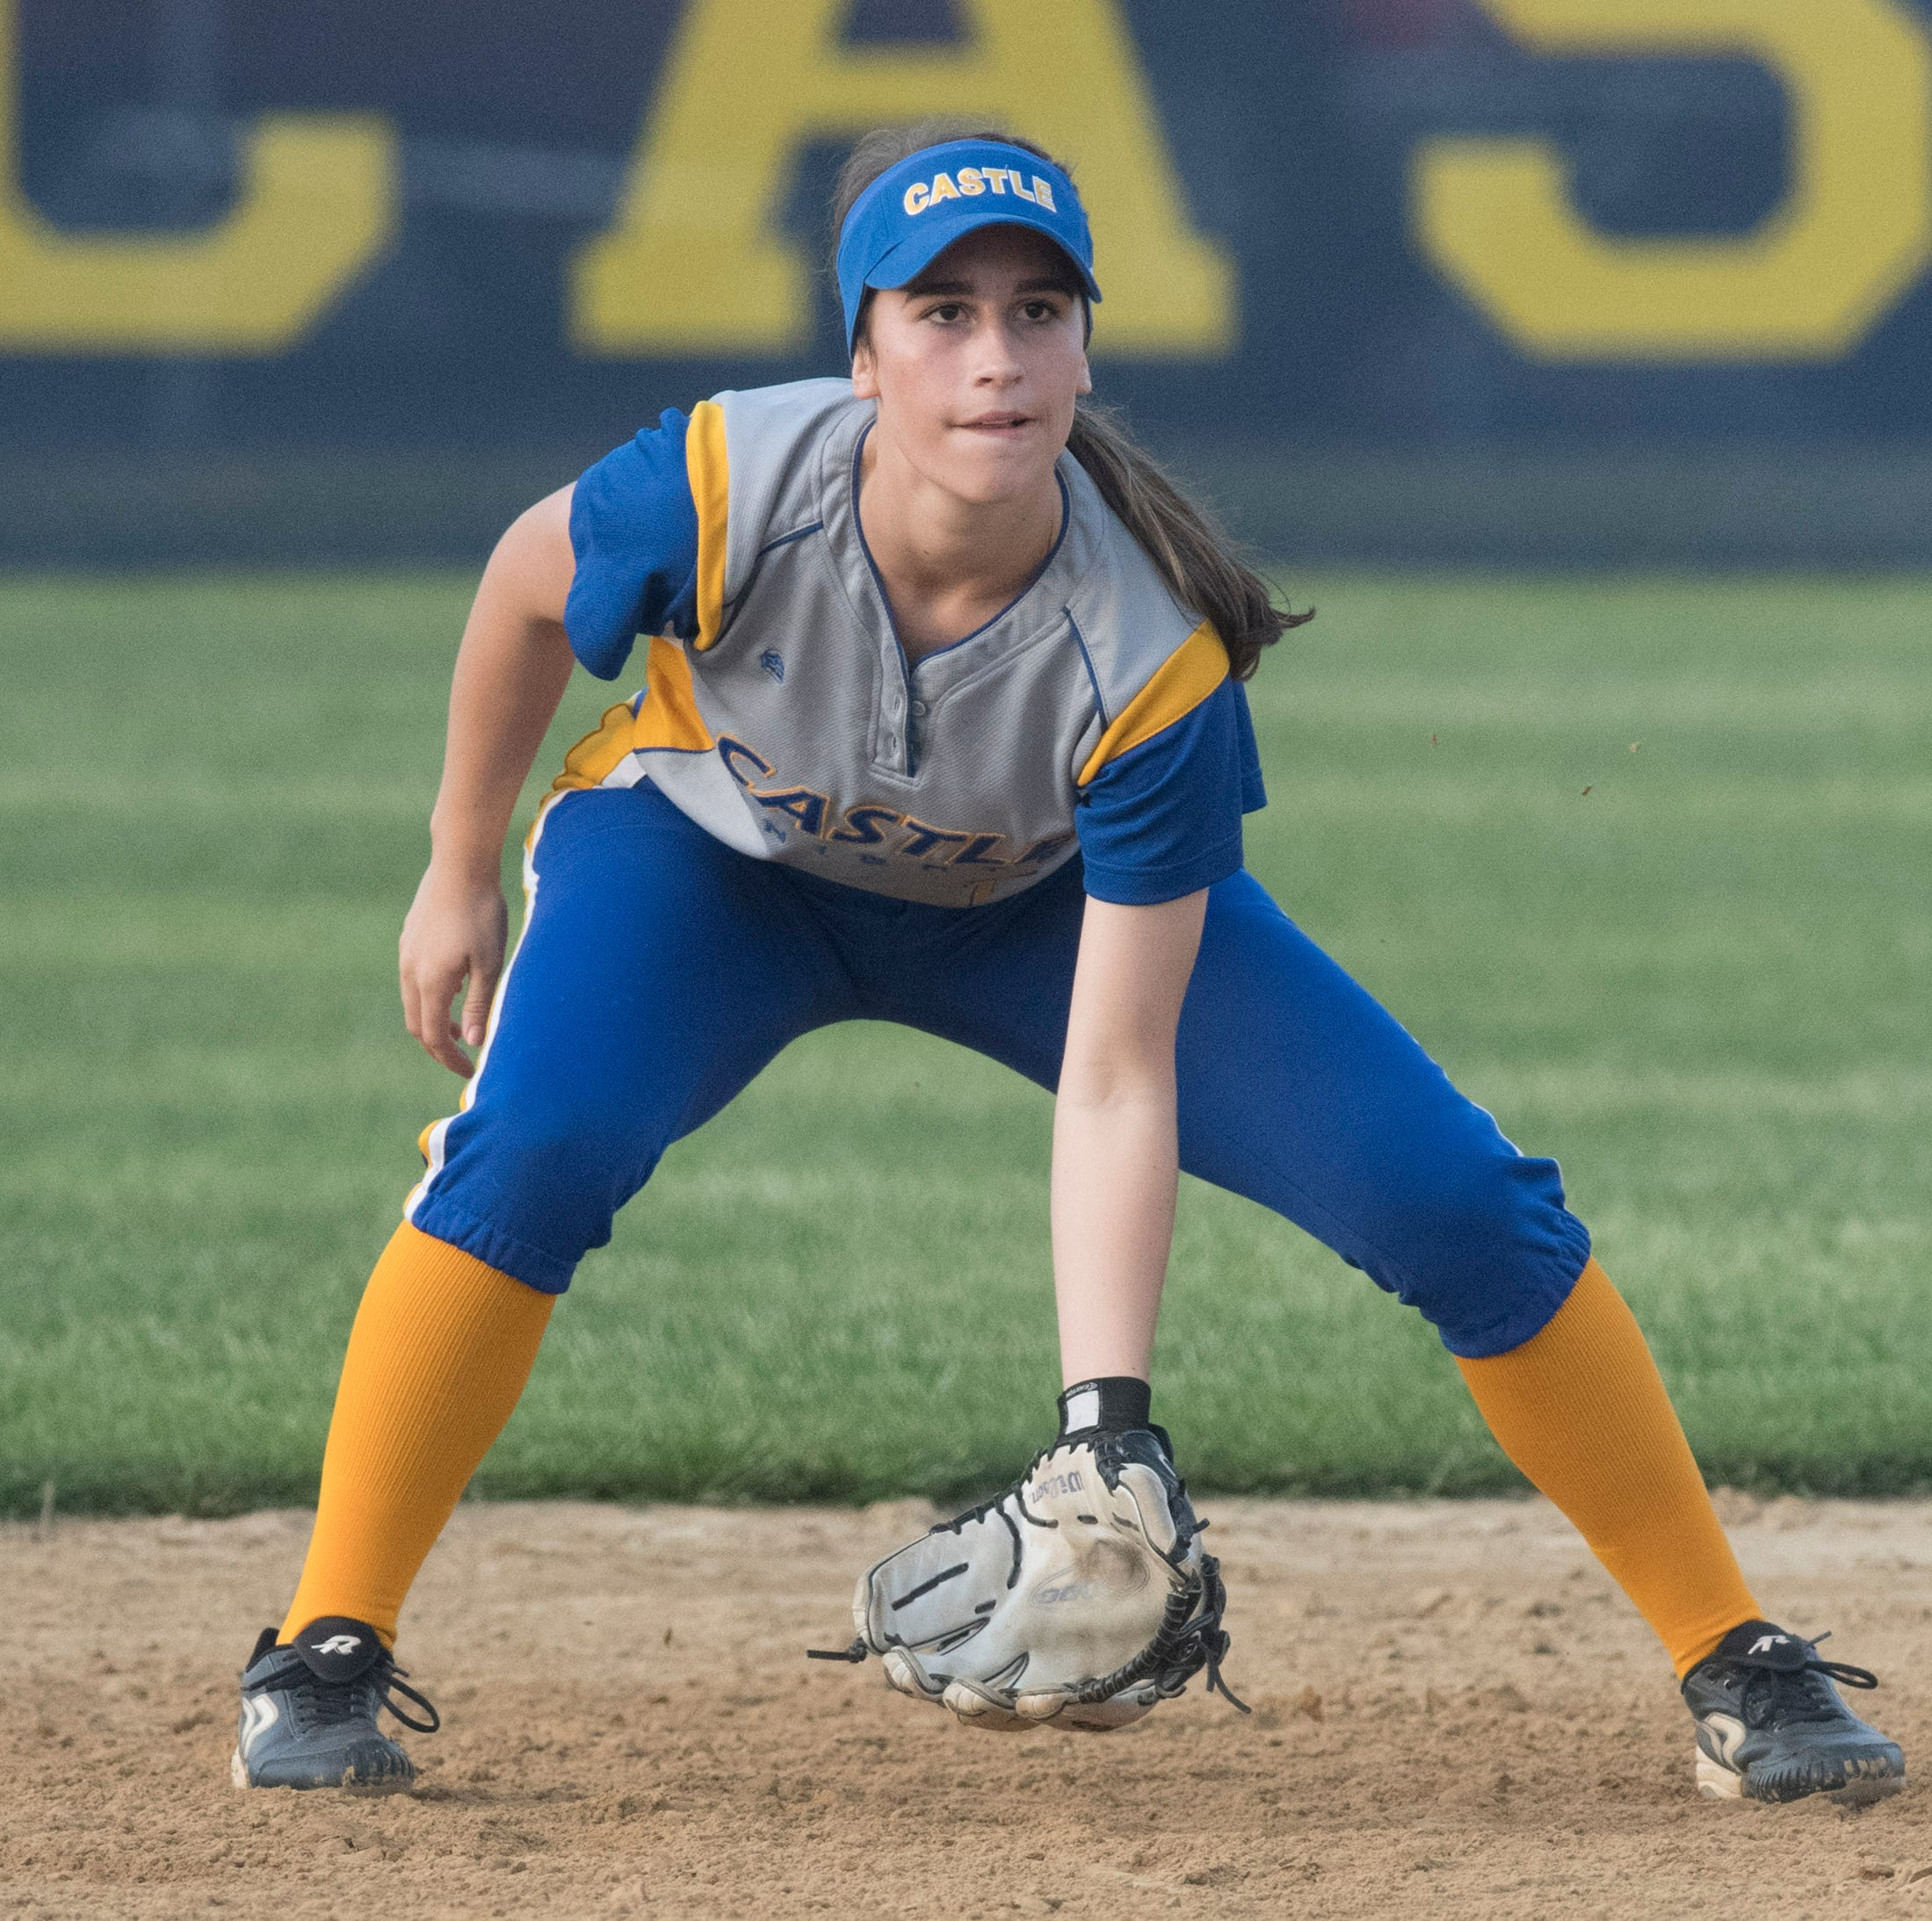 Ella Bassett provides versatility around the diamond for Castle softball